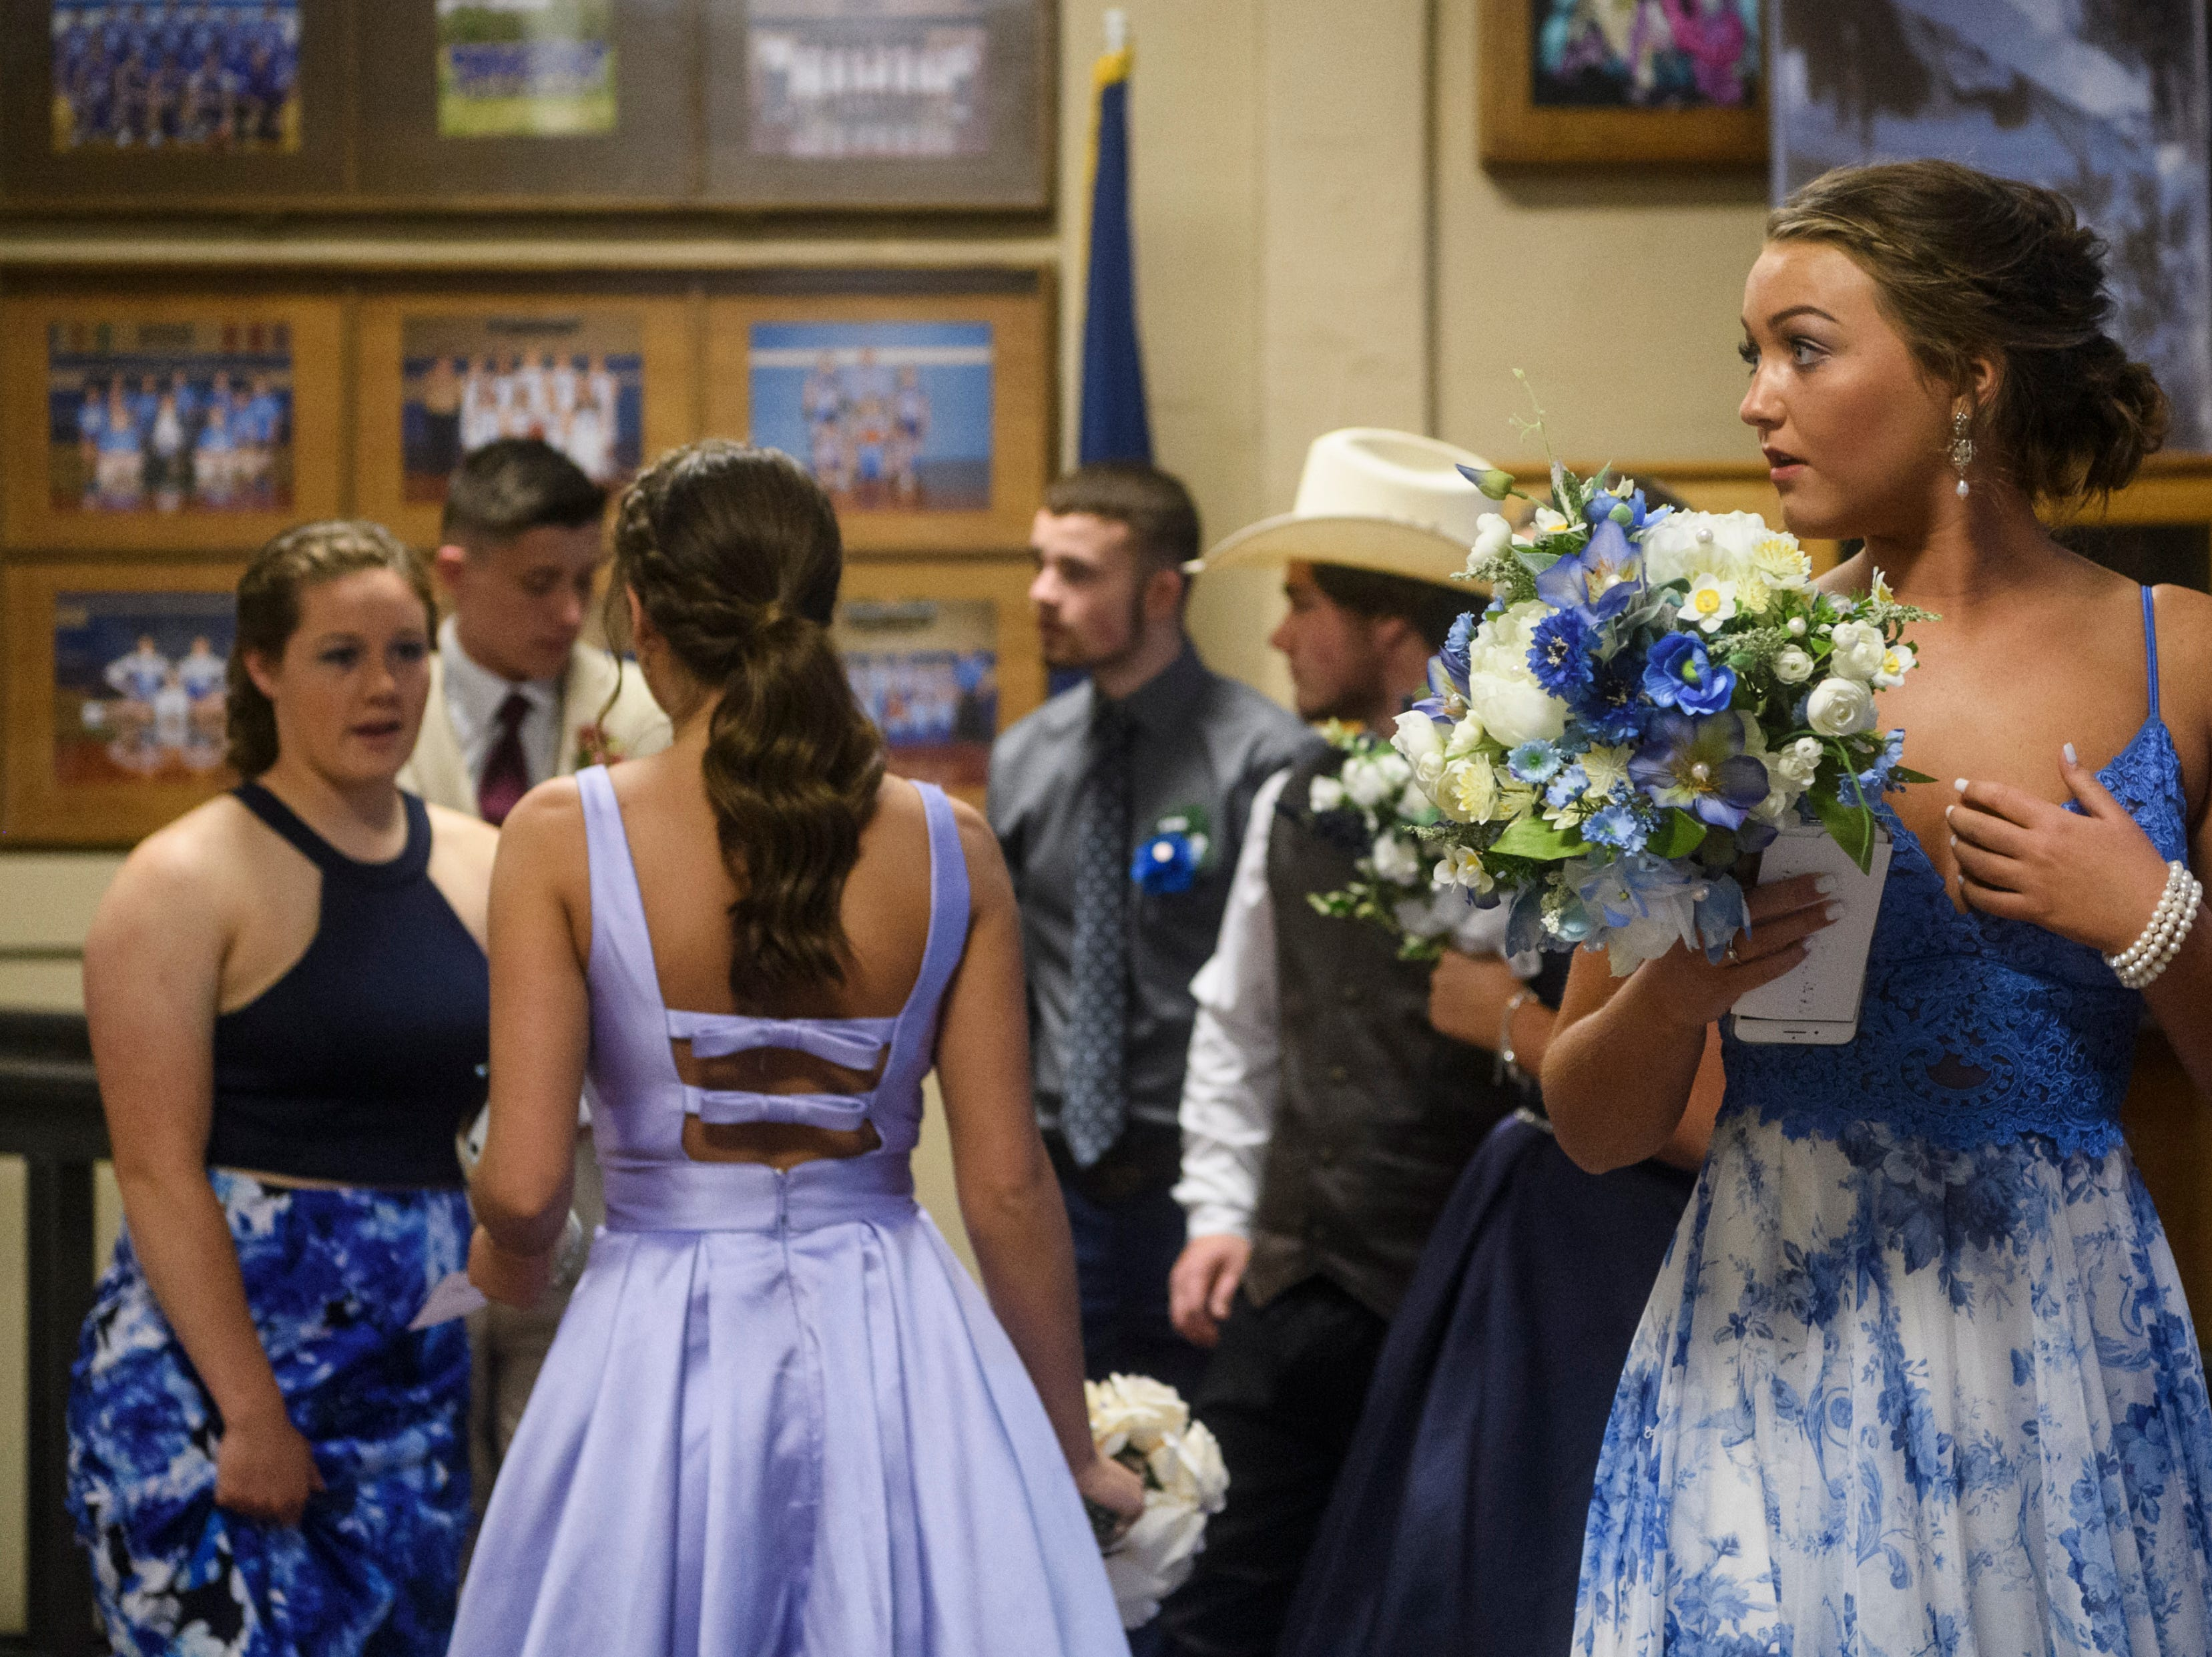 """Students mingle and wait patiently for the start of the """"grand march,"""" a tradition where they parade in front of family and friends before the start of North Posey's prom held at the Ribeyre Center in New Harmony, Ind., Saturday, May 4, 2019."""